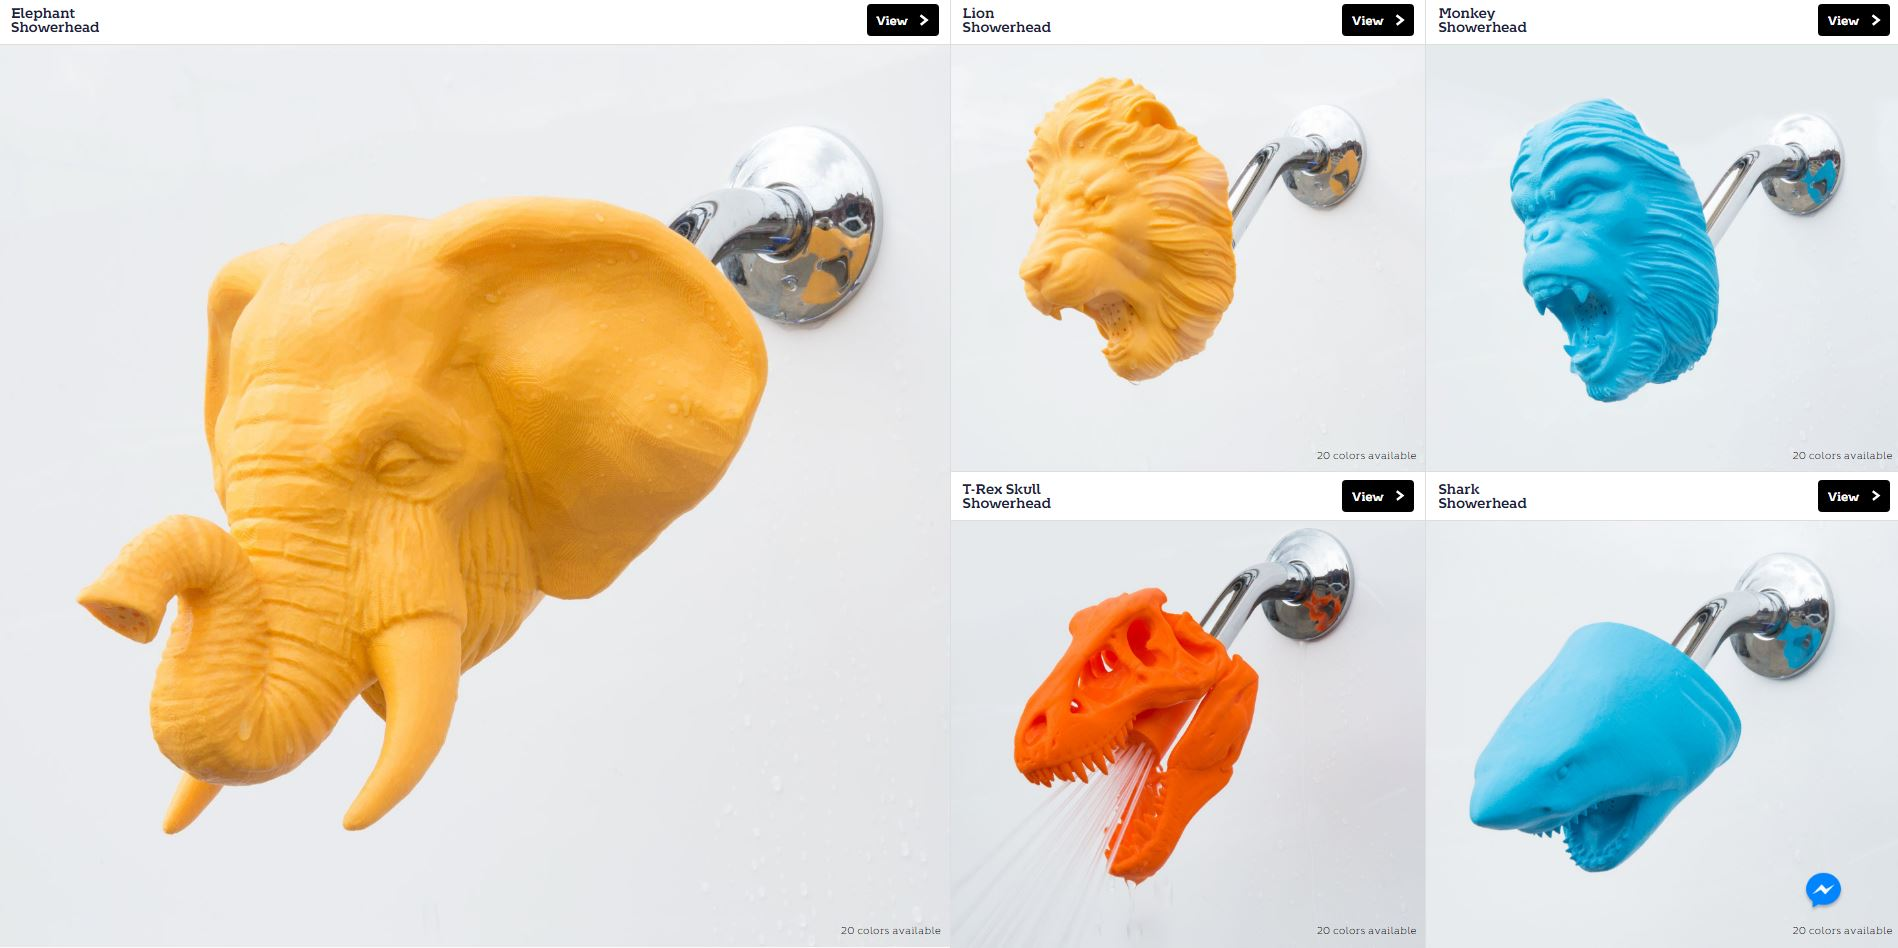 Selection of 3D printed shower-heads on the Zooheads store, powered by Voodoo. Photo via Zooheads.